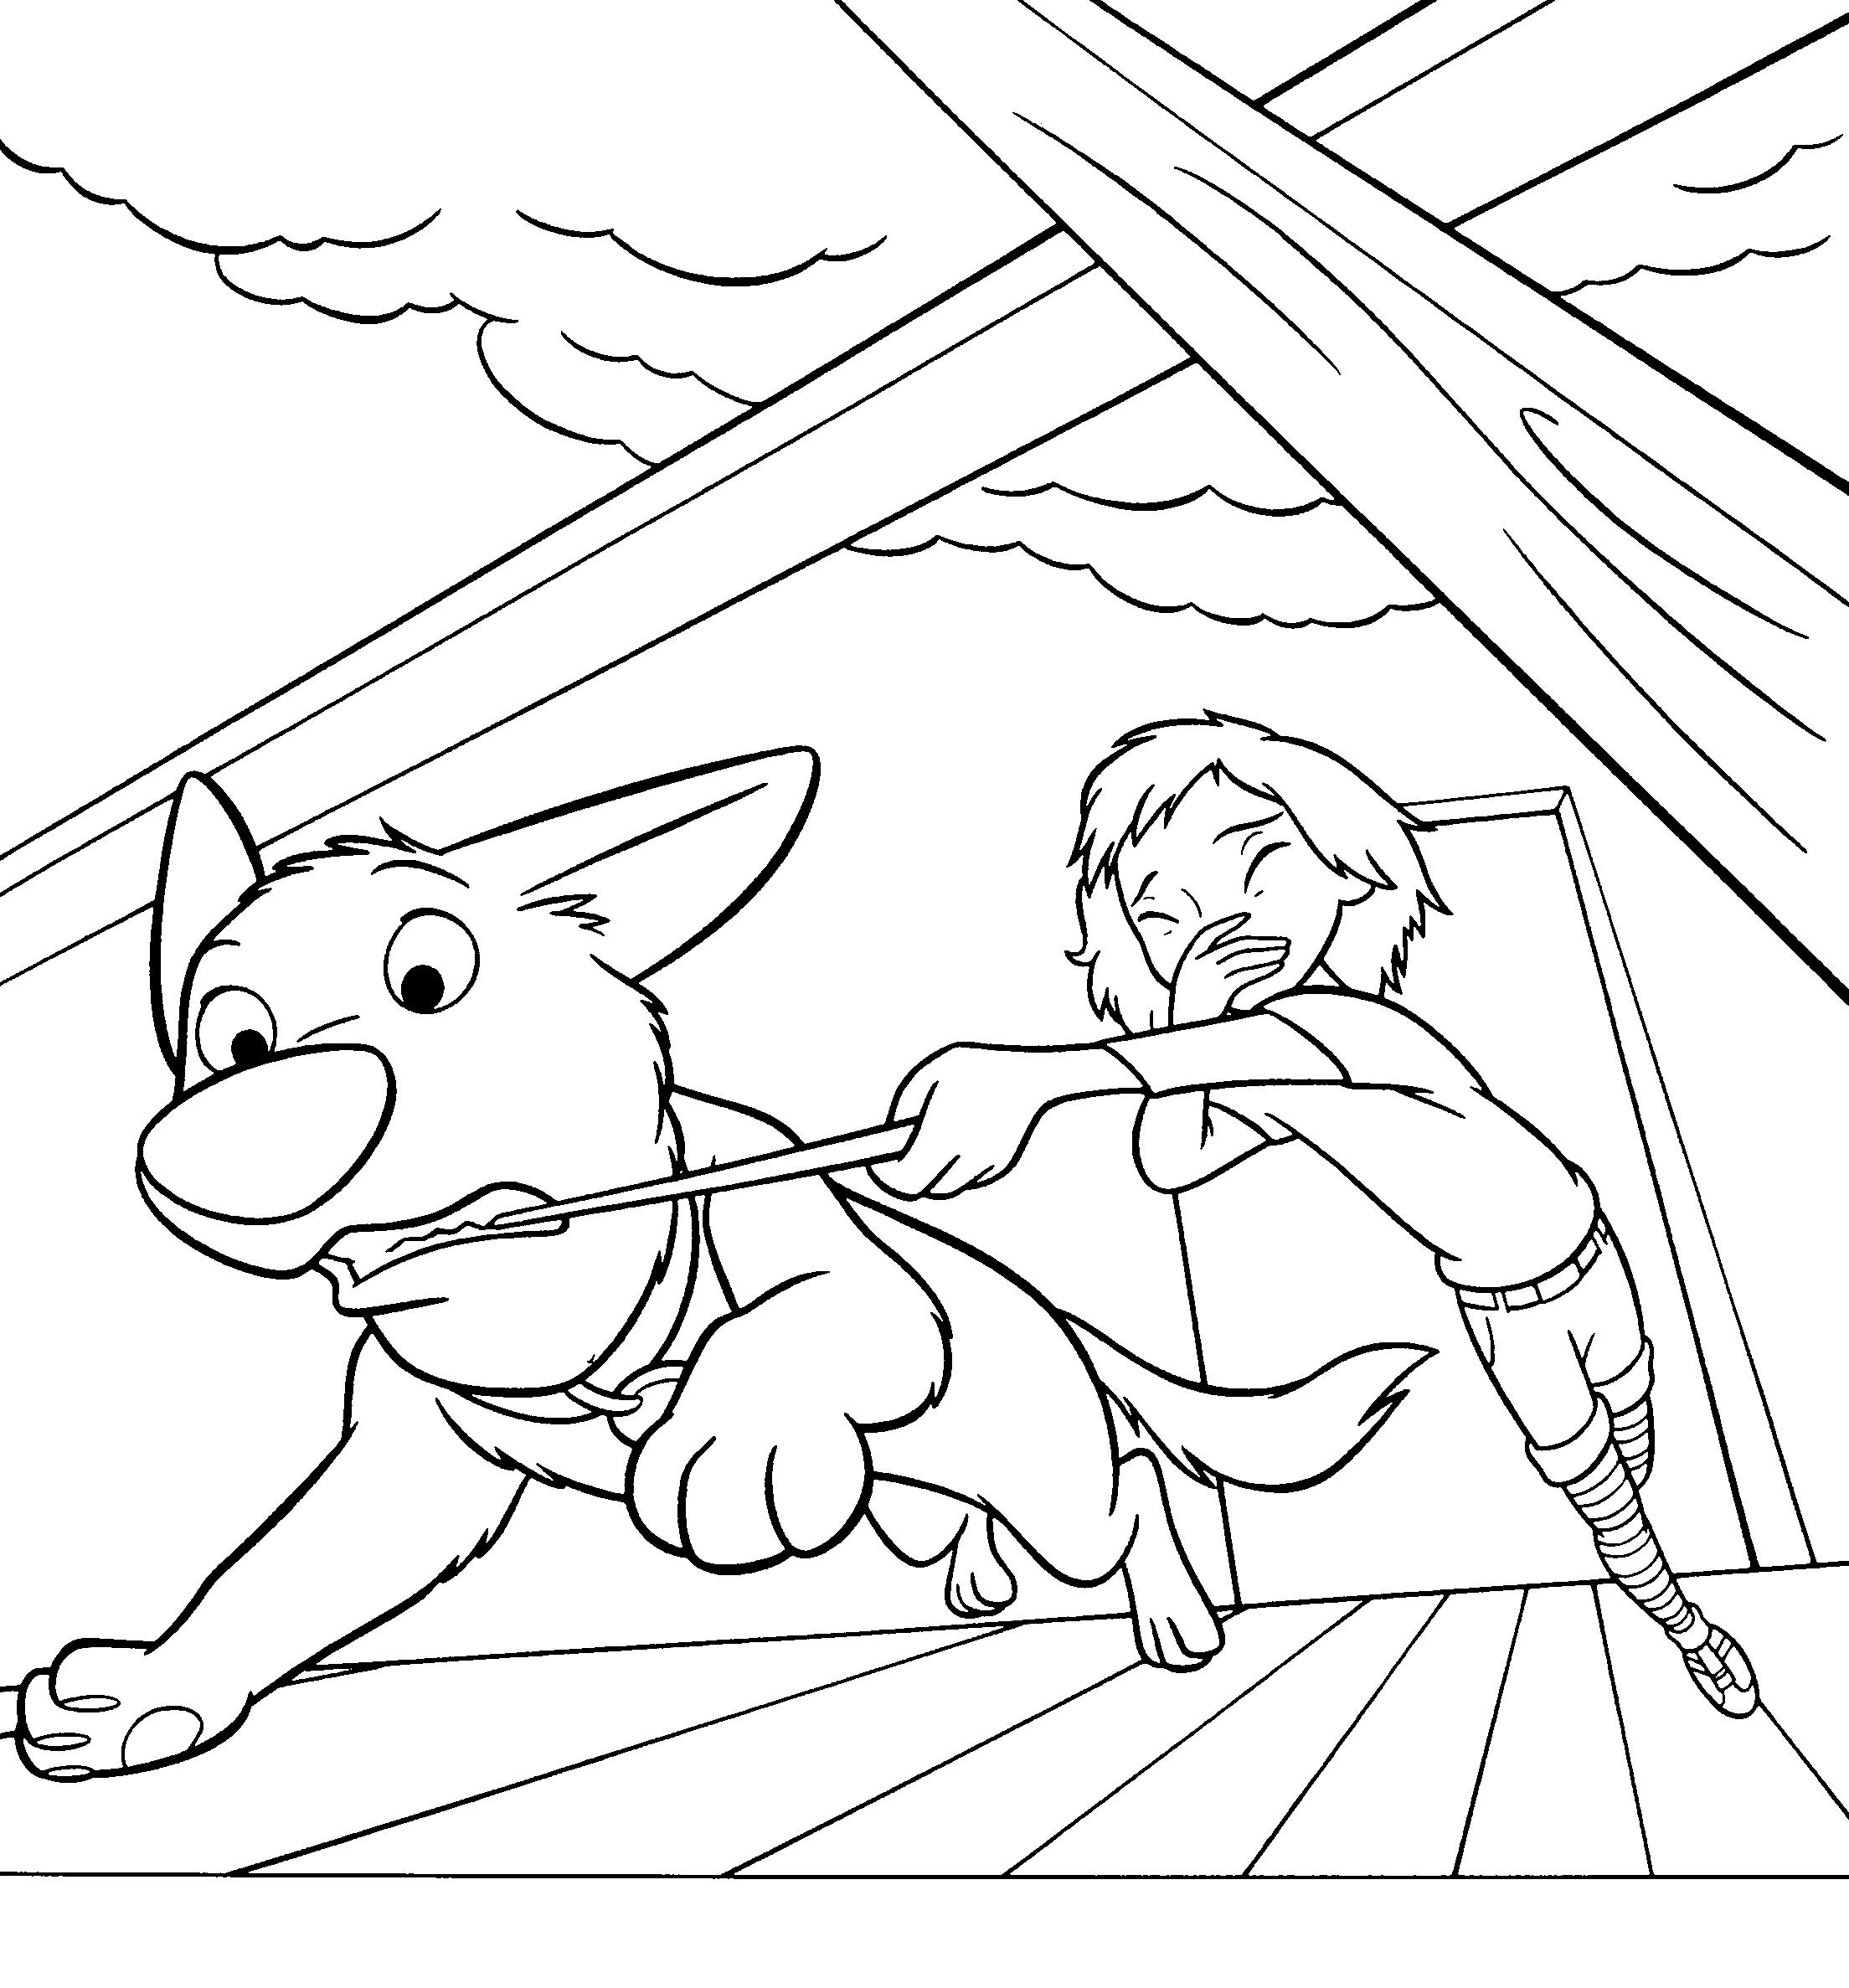 Bolt Angry Coloring Page - Bolt car coloring pages | Teacher Stuff ...